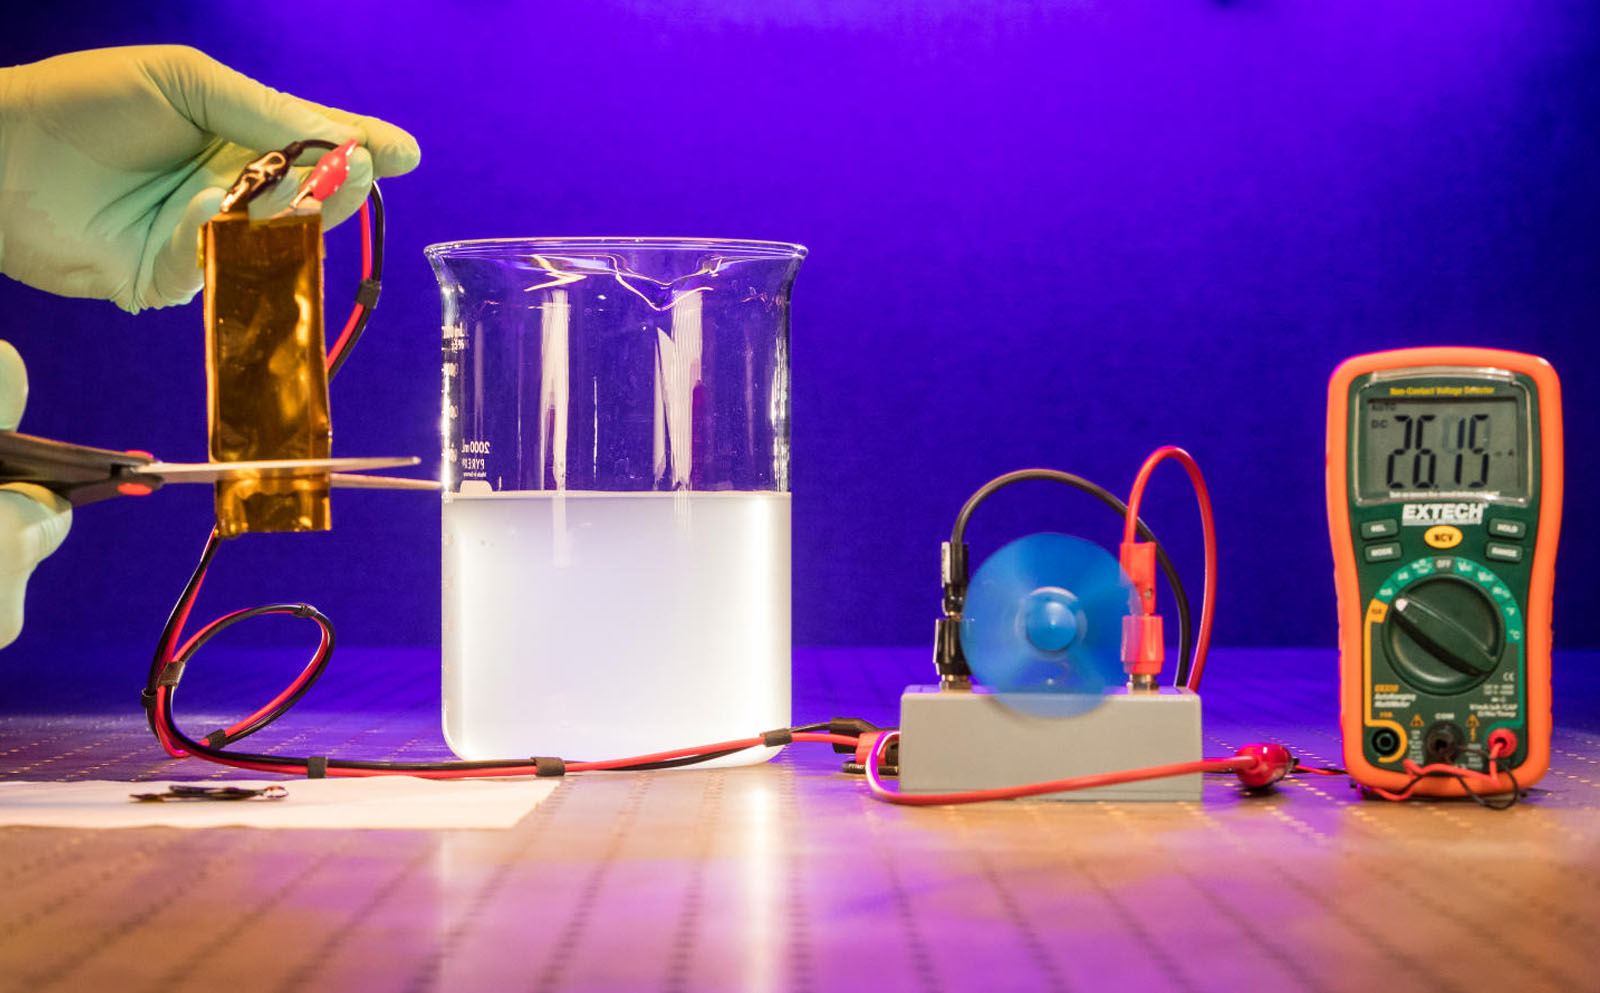 An APL researcher conducts an experiment with a cuttable battery